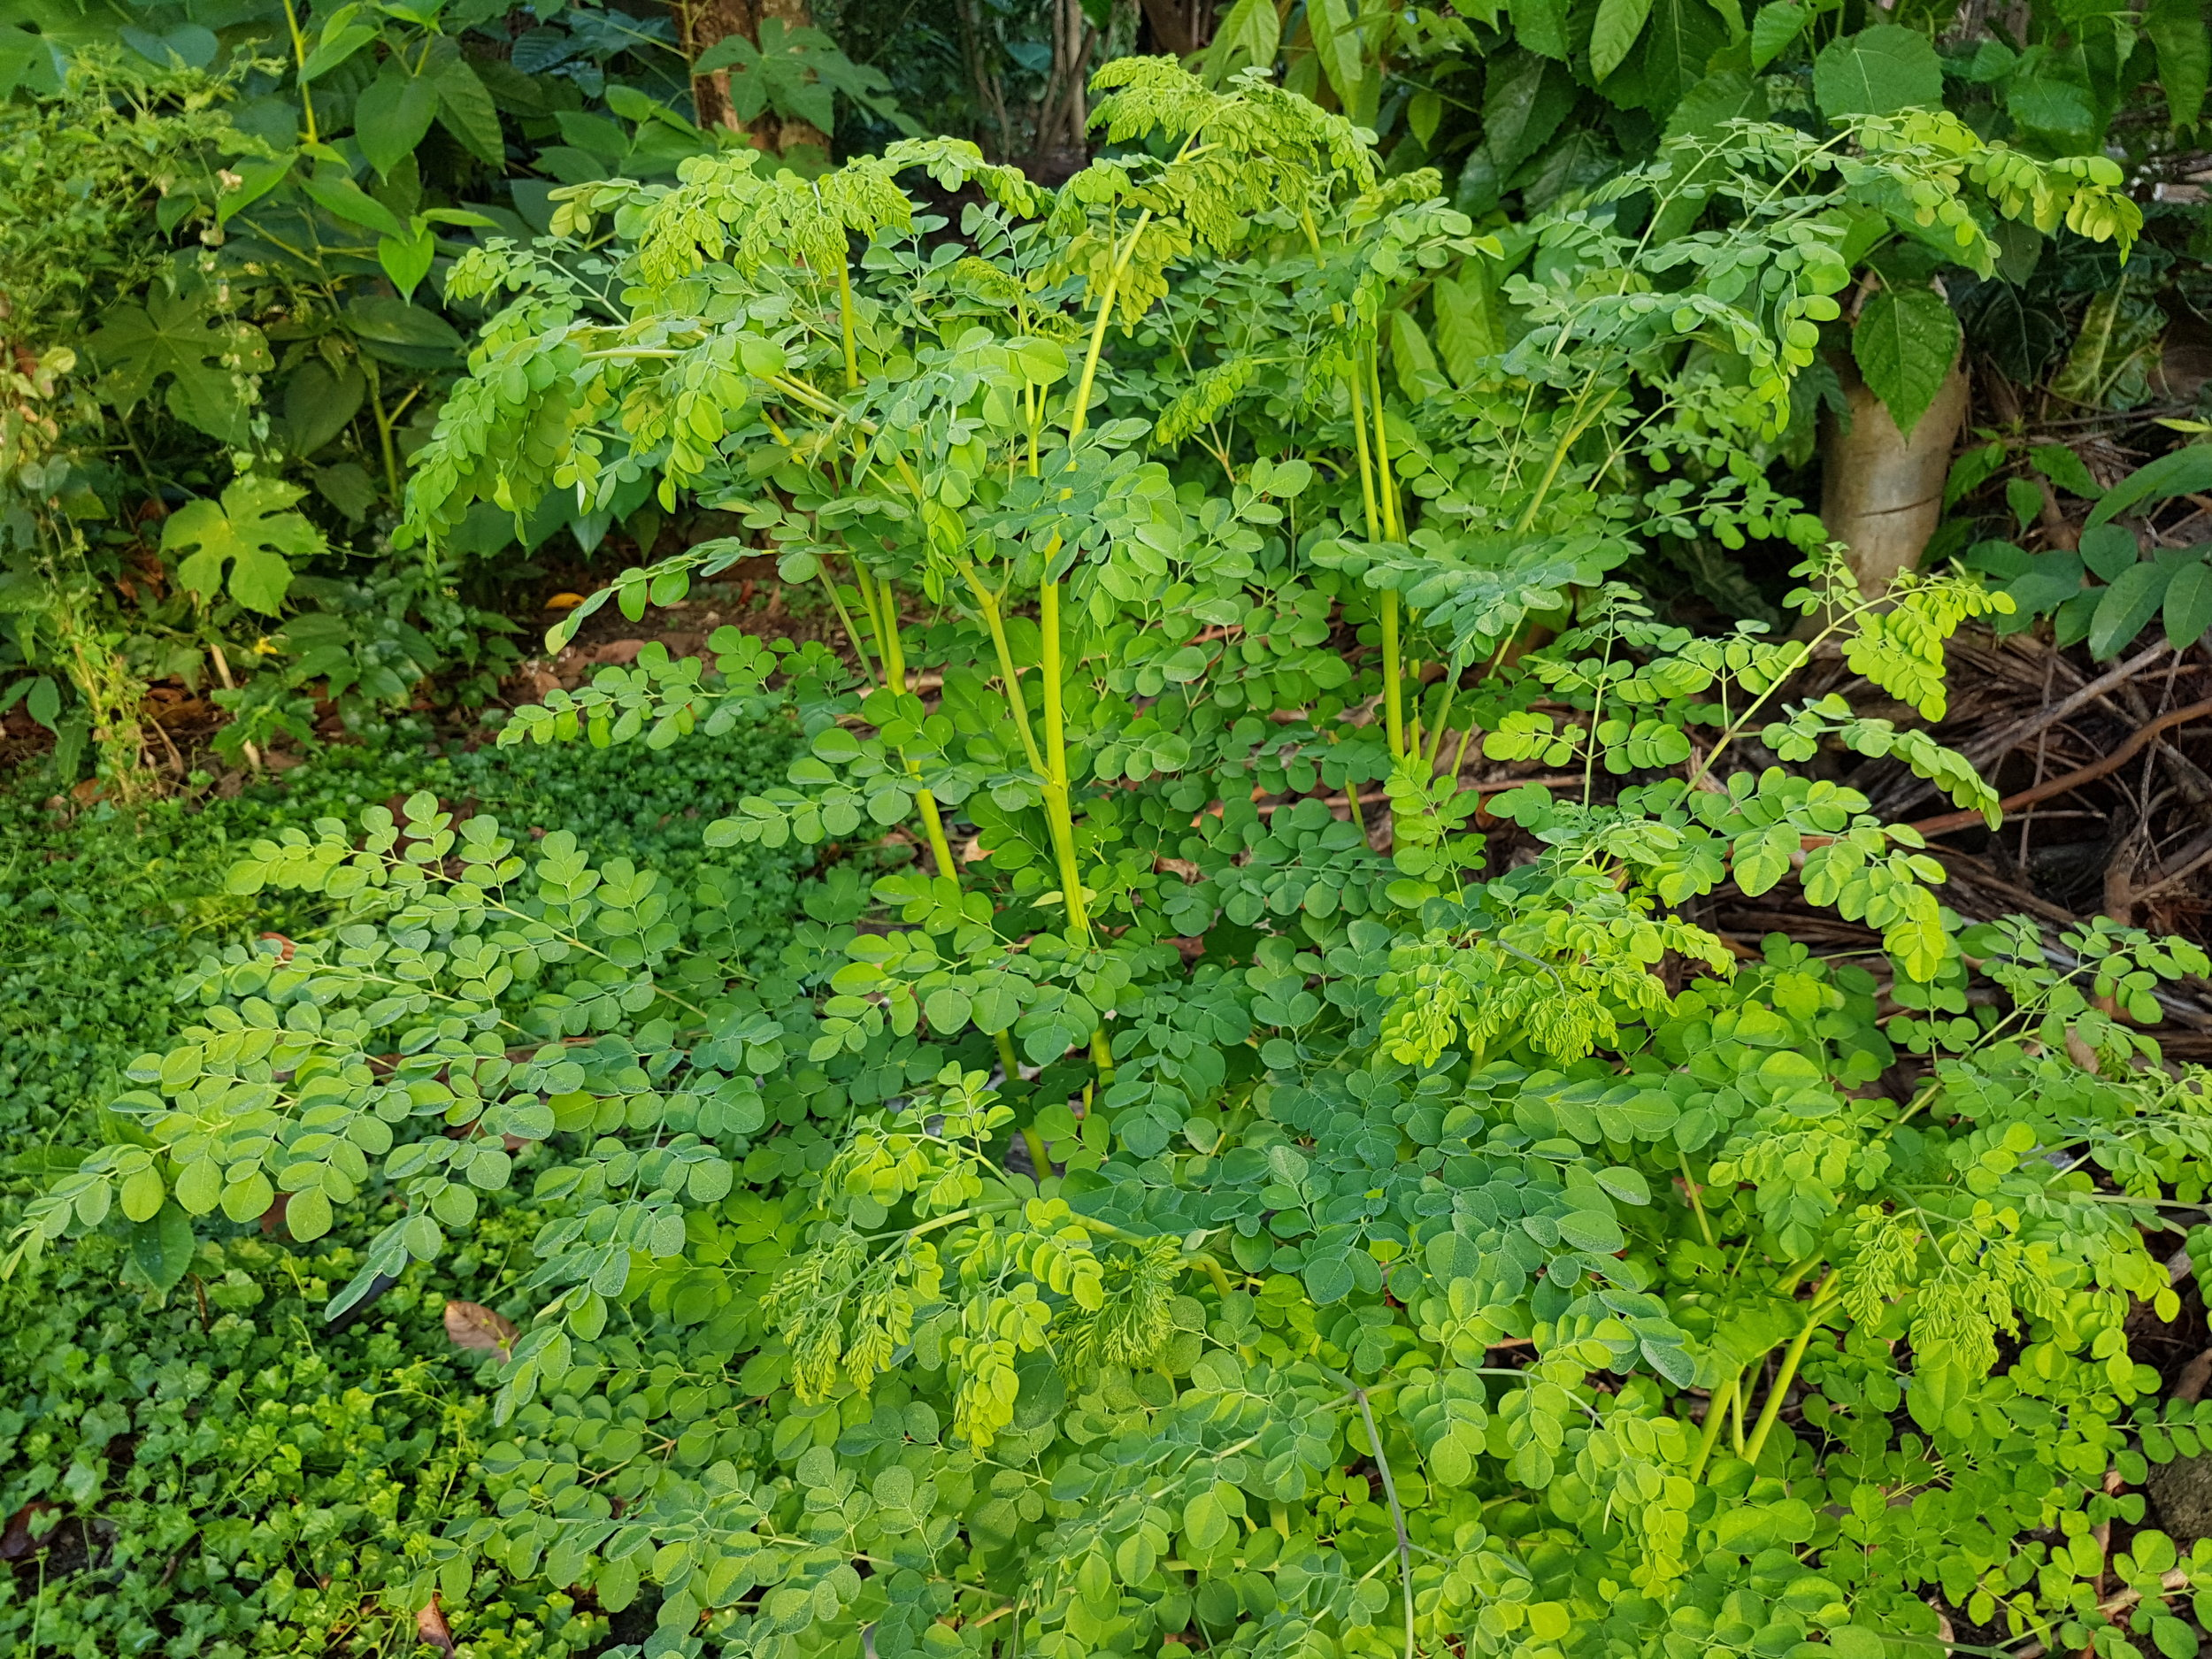 Moringa - One of the world's most nutritious, fast-growing plants, Moringa oleifera offers solutions to a growing global demand for healthy food and nutrition.